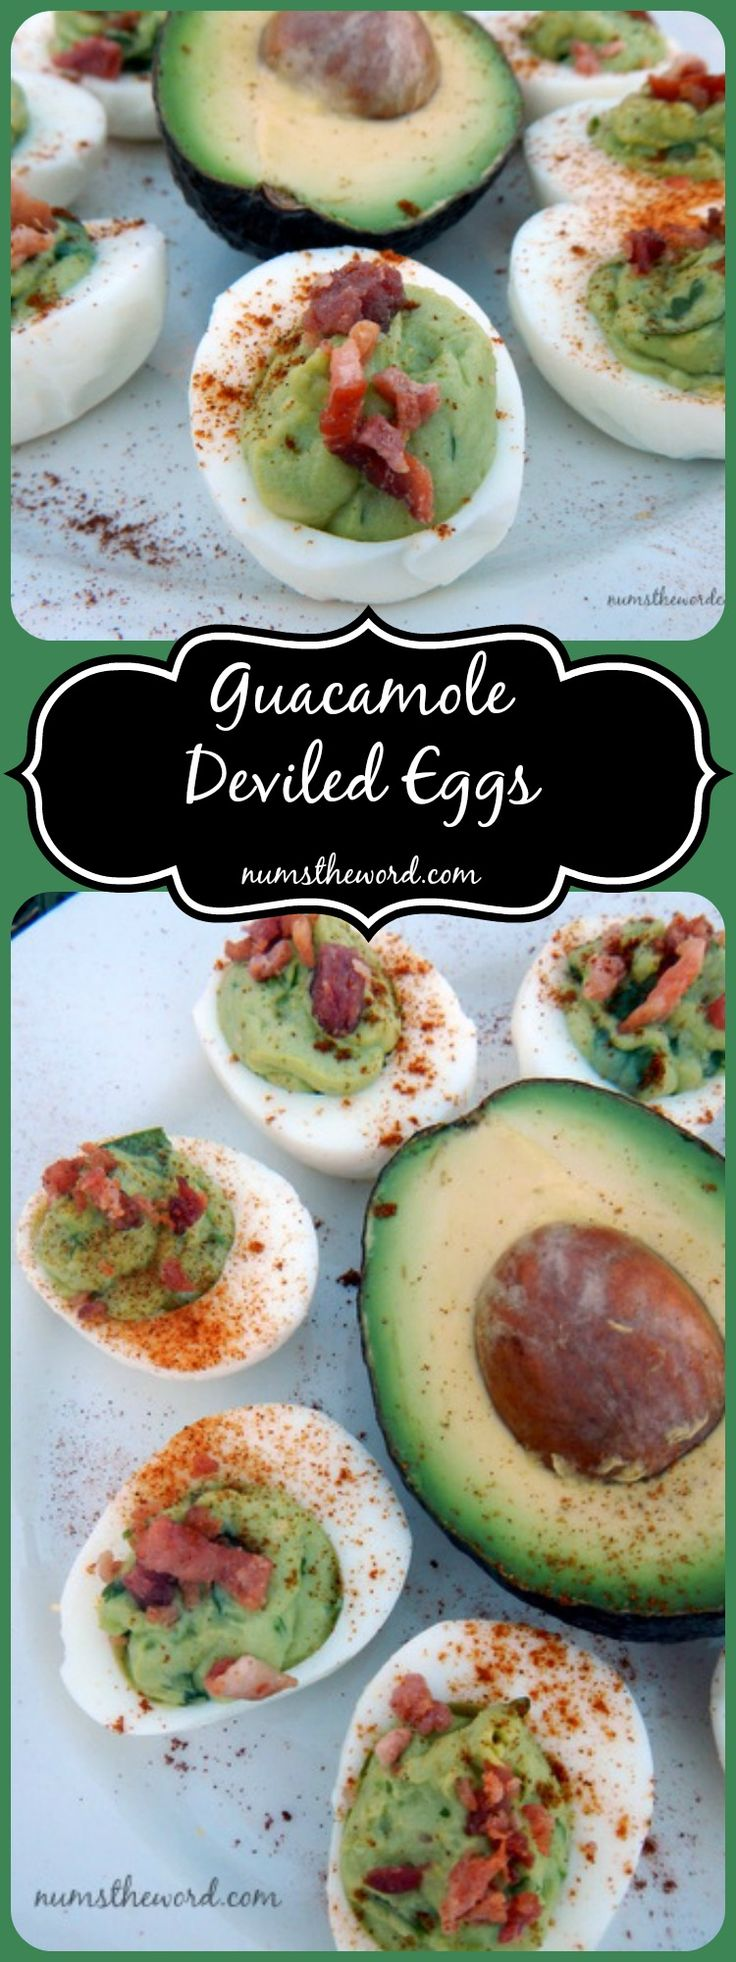 Do you love Guacamole? Try these Guacamole Deviled Eggs. 10 minute appetizer that everyone will love! This is the perfect way to use up hard boiled eggs!